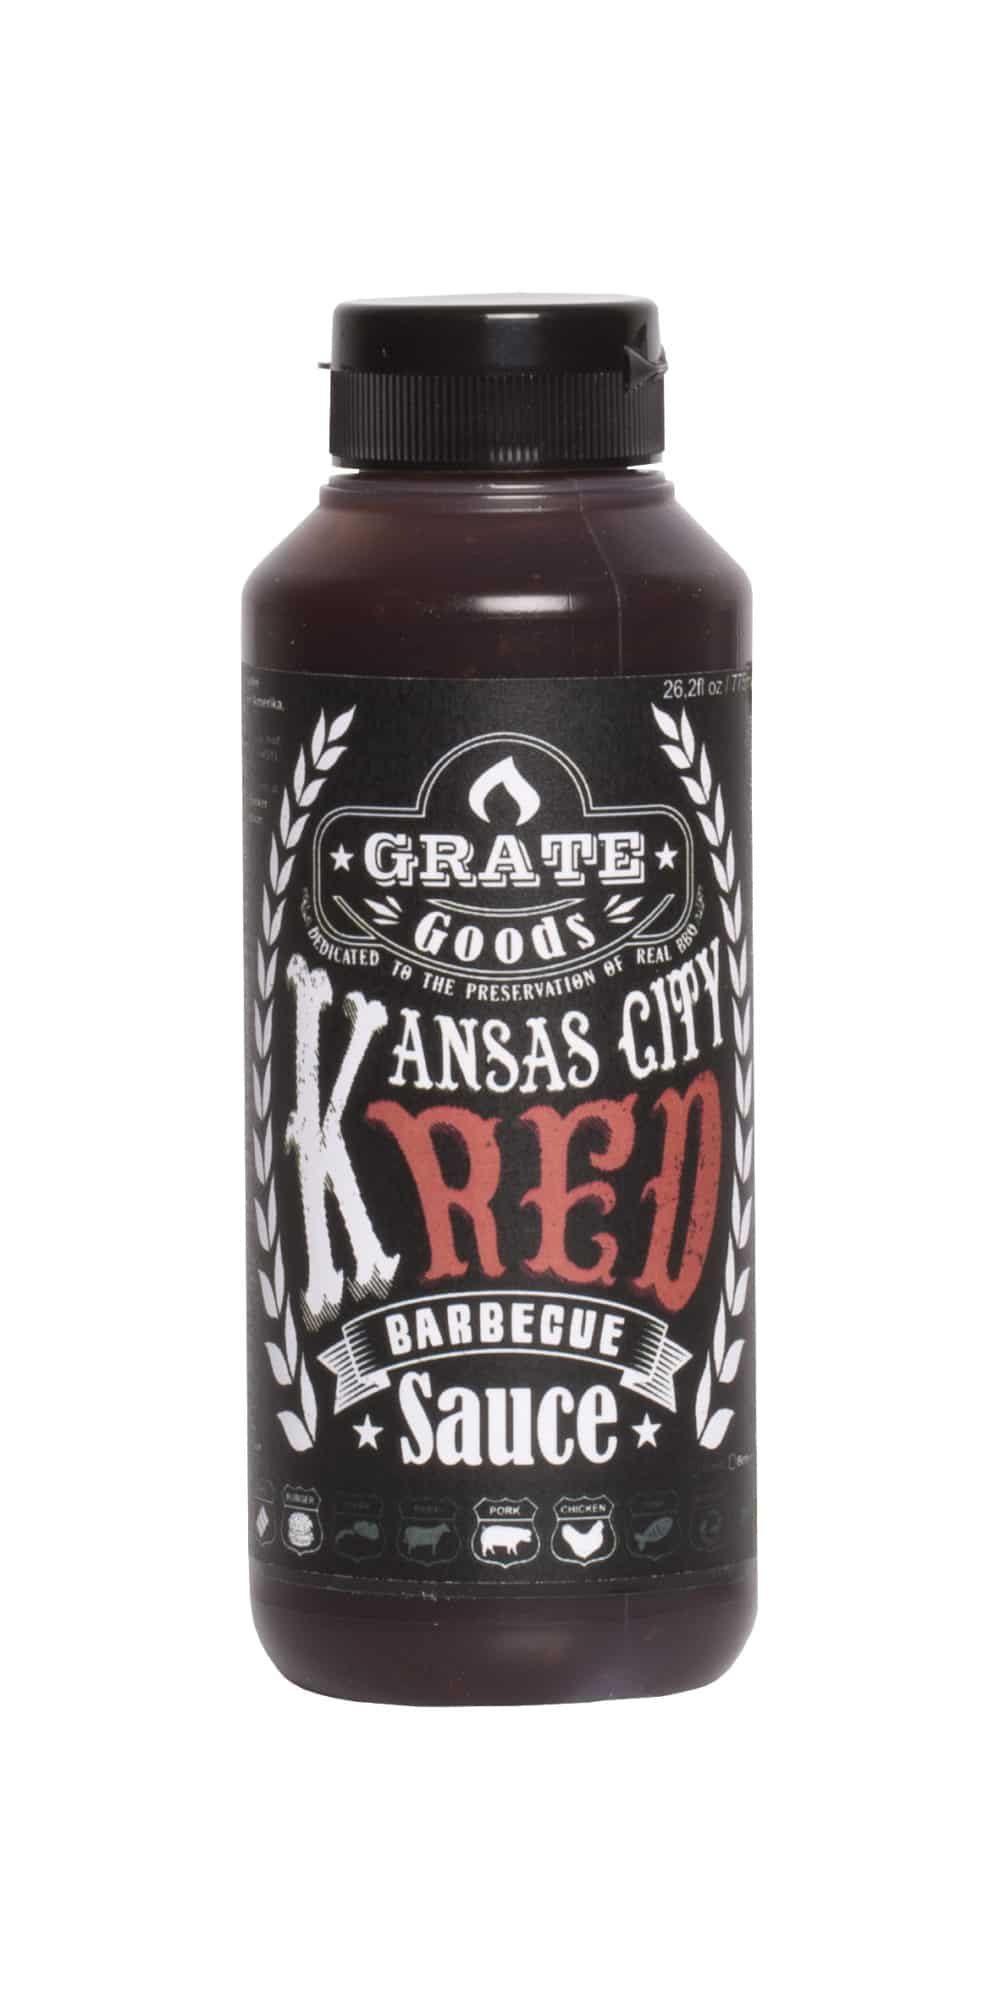 Kansas city red barbecue sauce